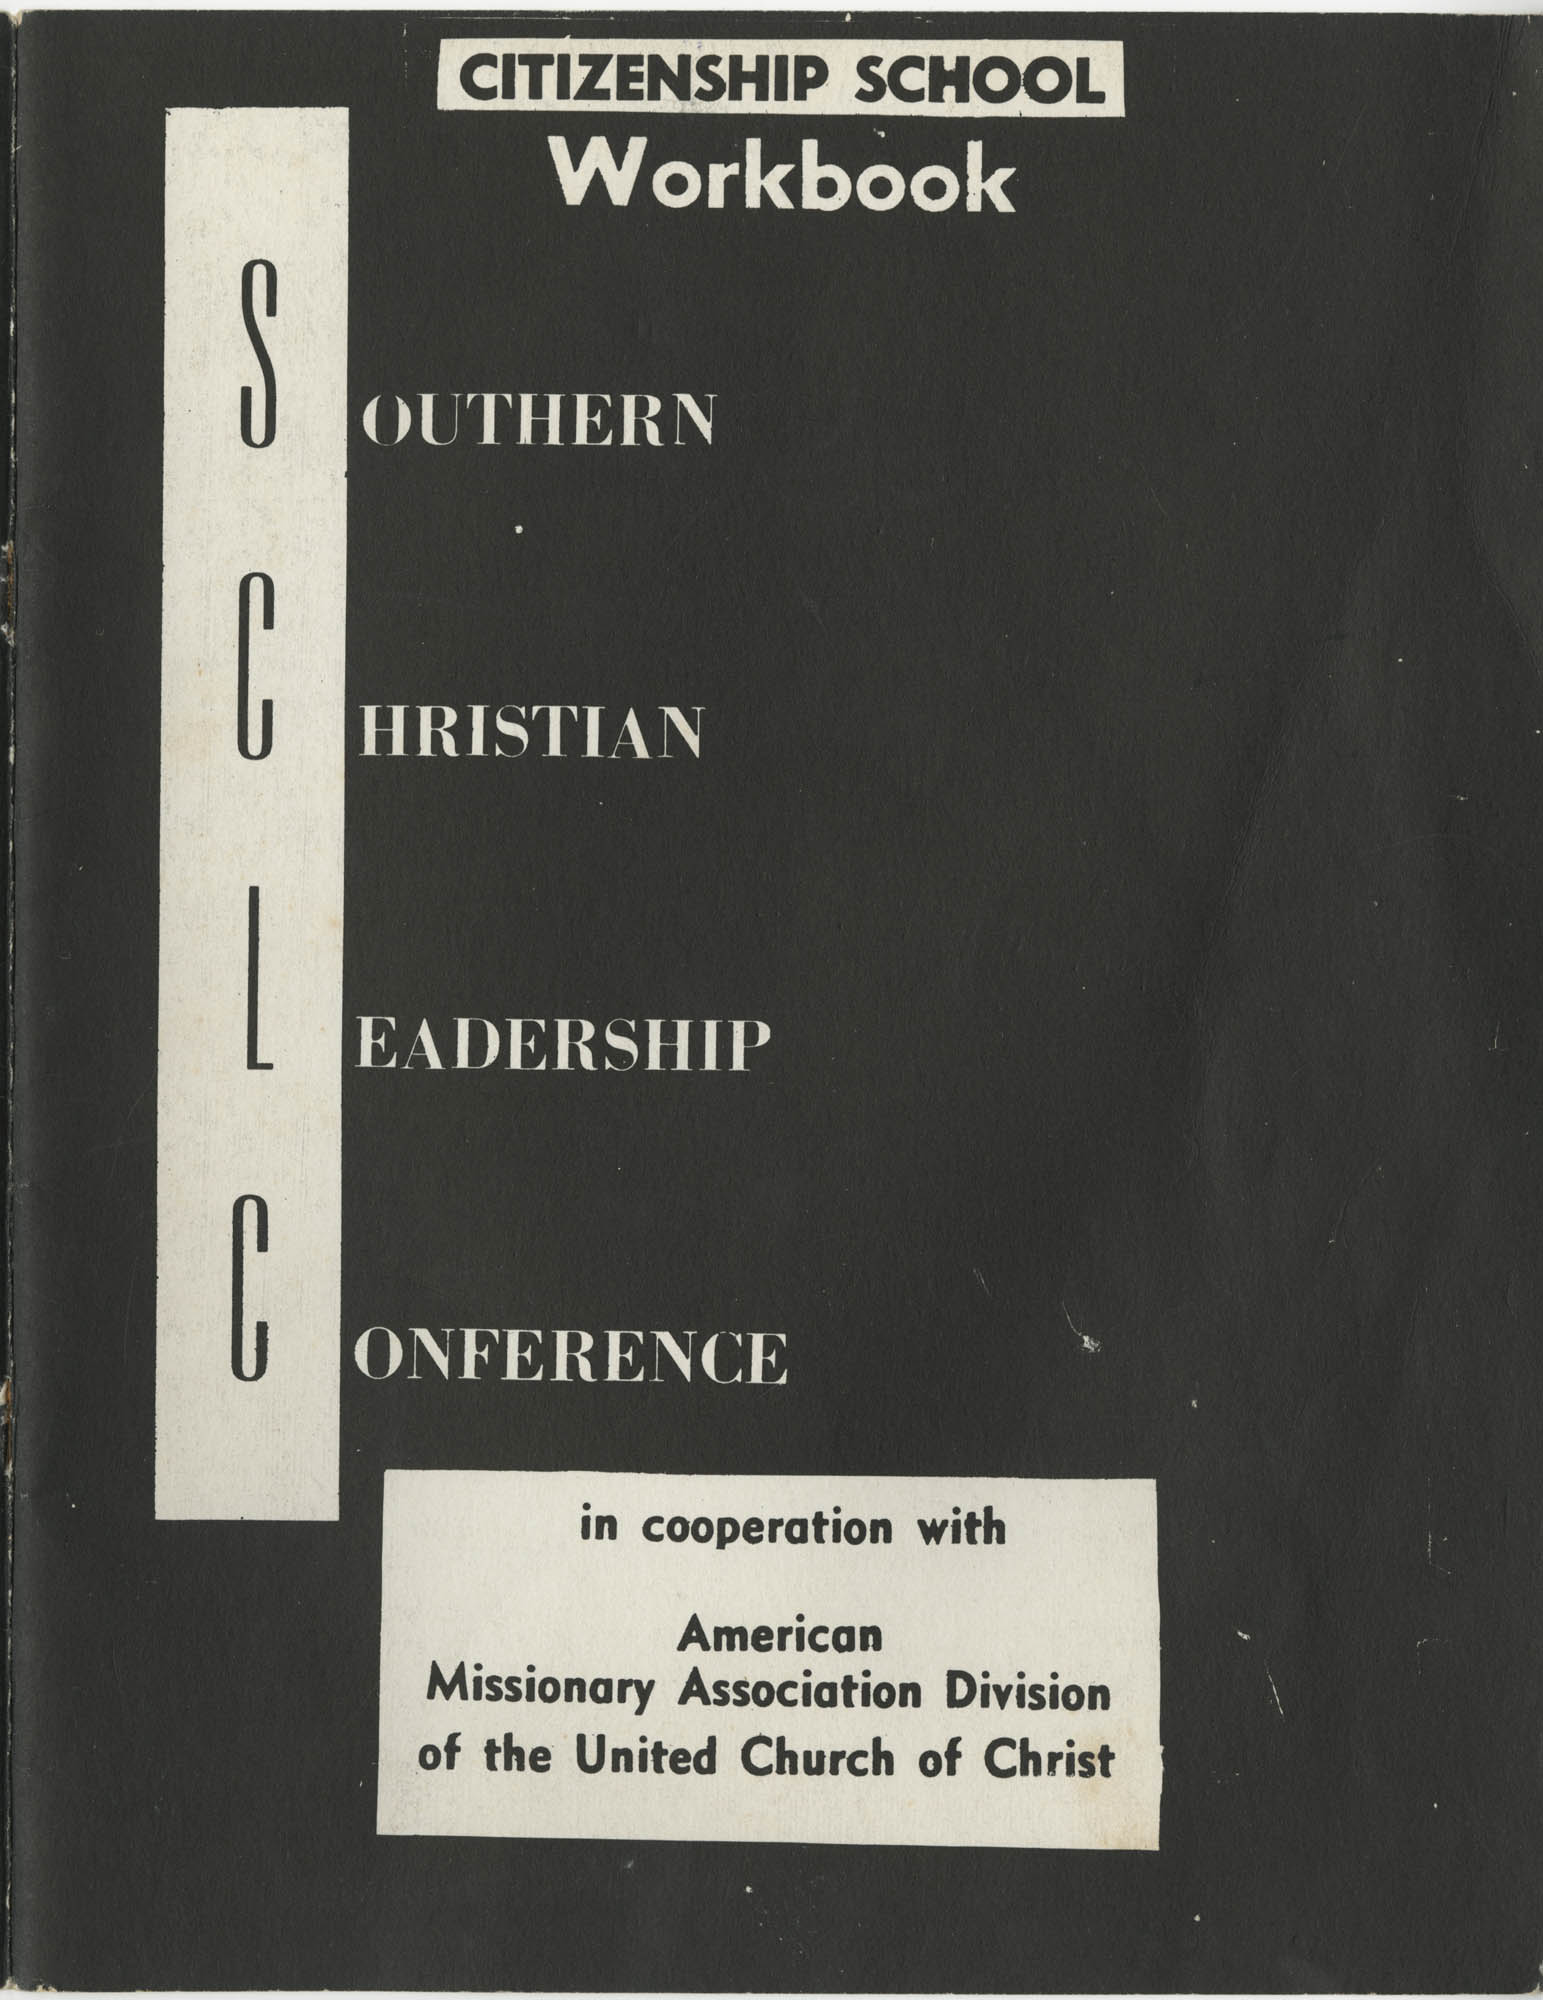 Southern Christian Leadership Conference Citizenship School Workbook, Front Cover Exterior